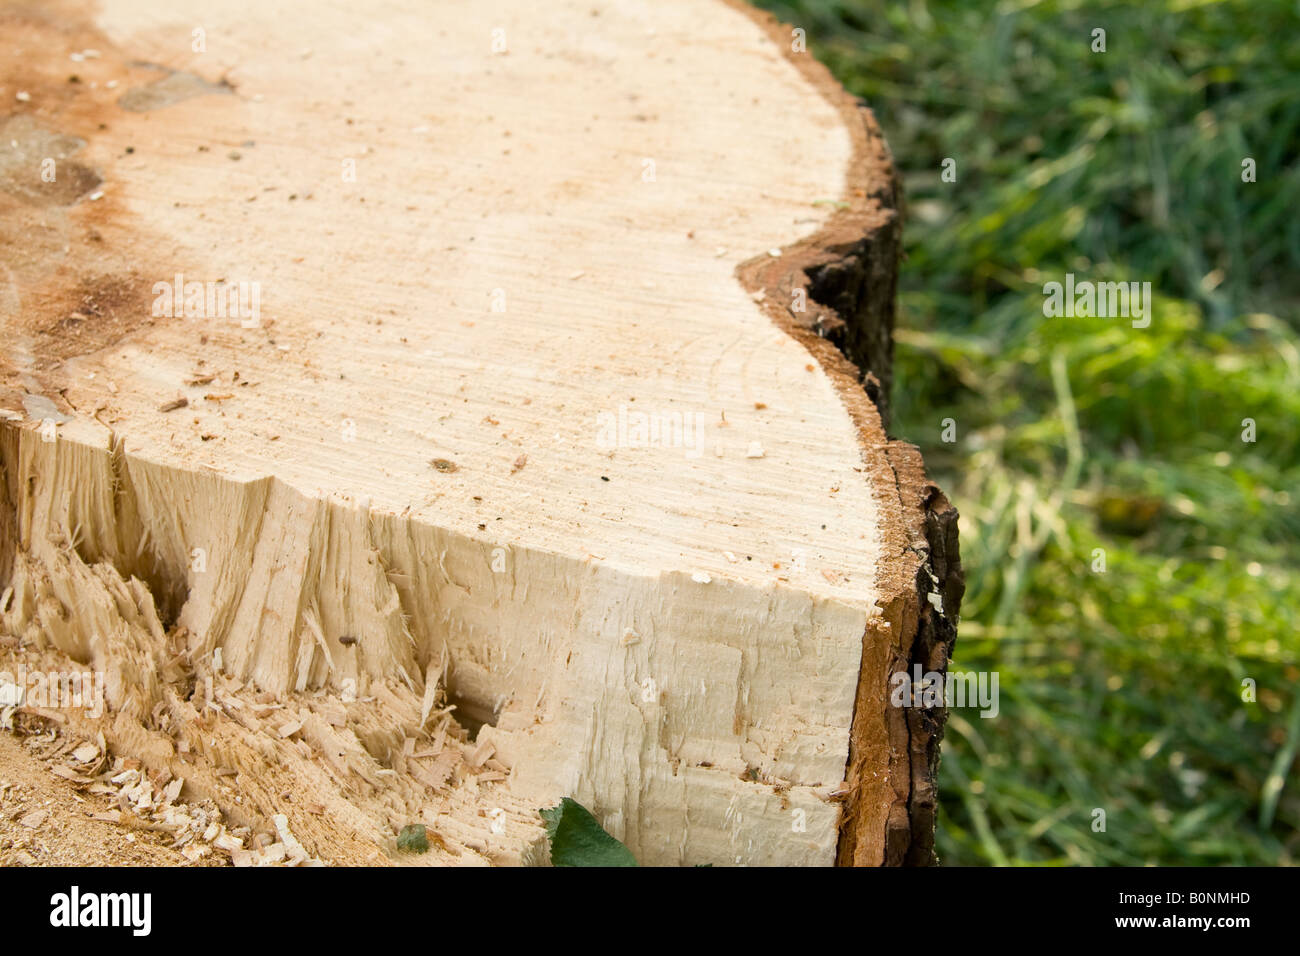 A section through a ^sawn tree trunk, UK. - Stock Image